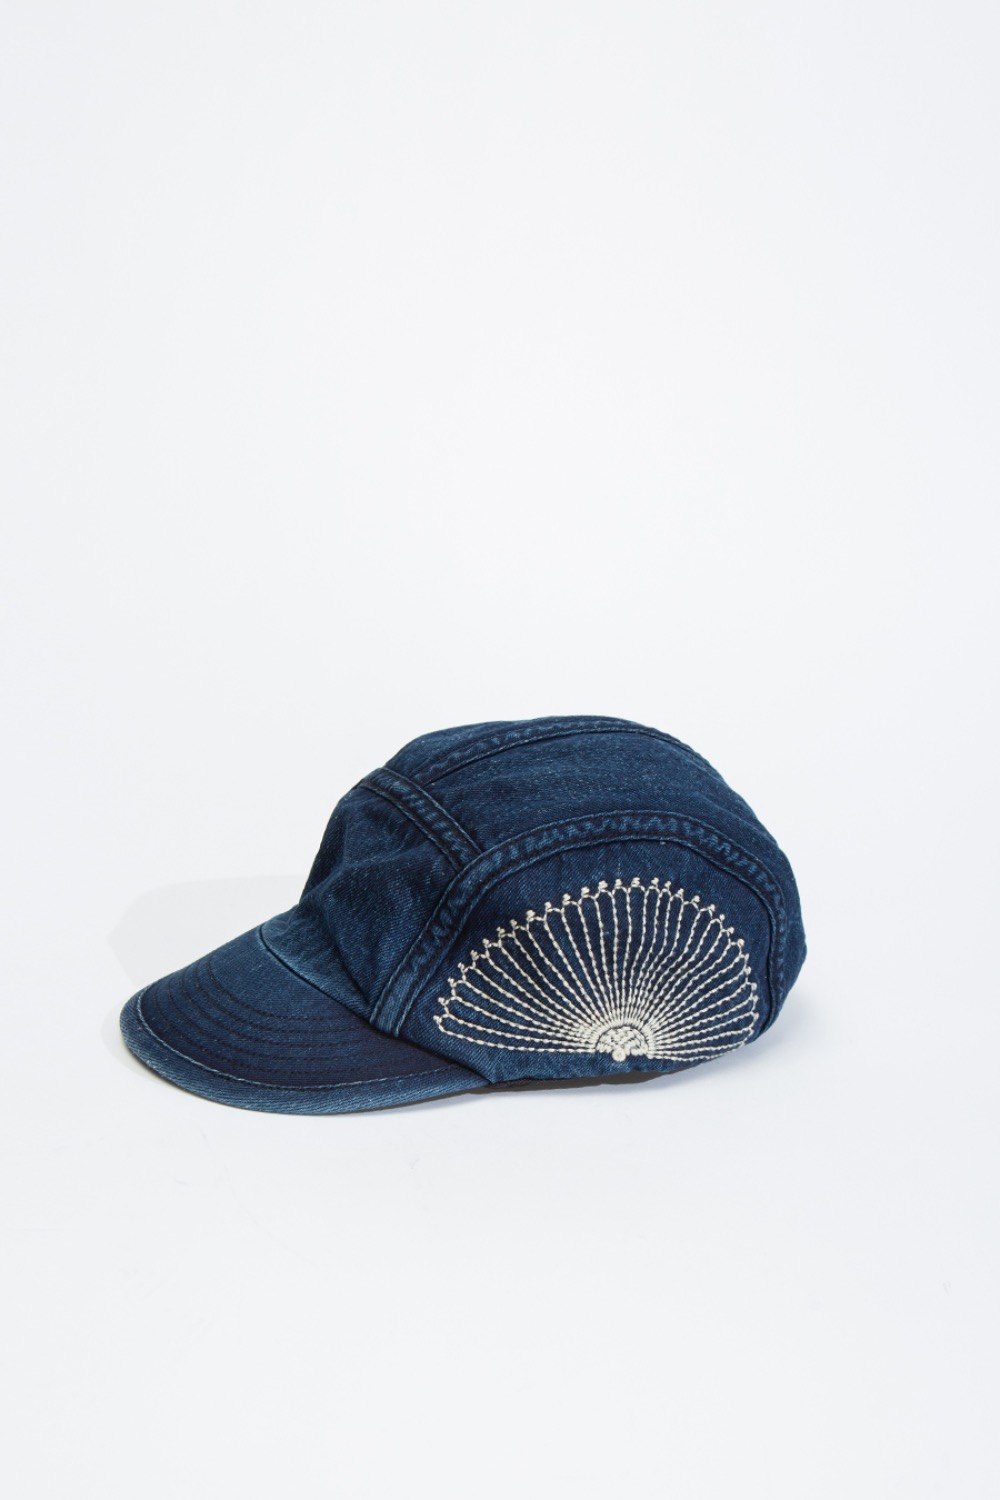 10oz IDG X IDG DENIM CAMP CAP(FUROSHIKI EMBROIDERED)